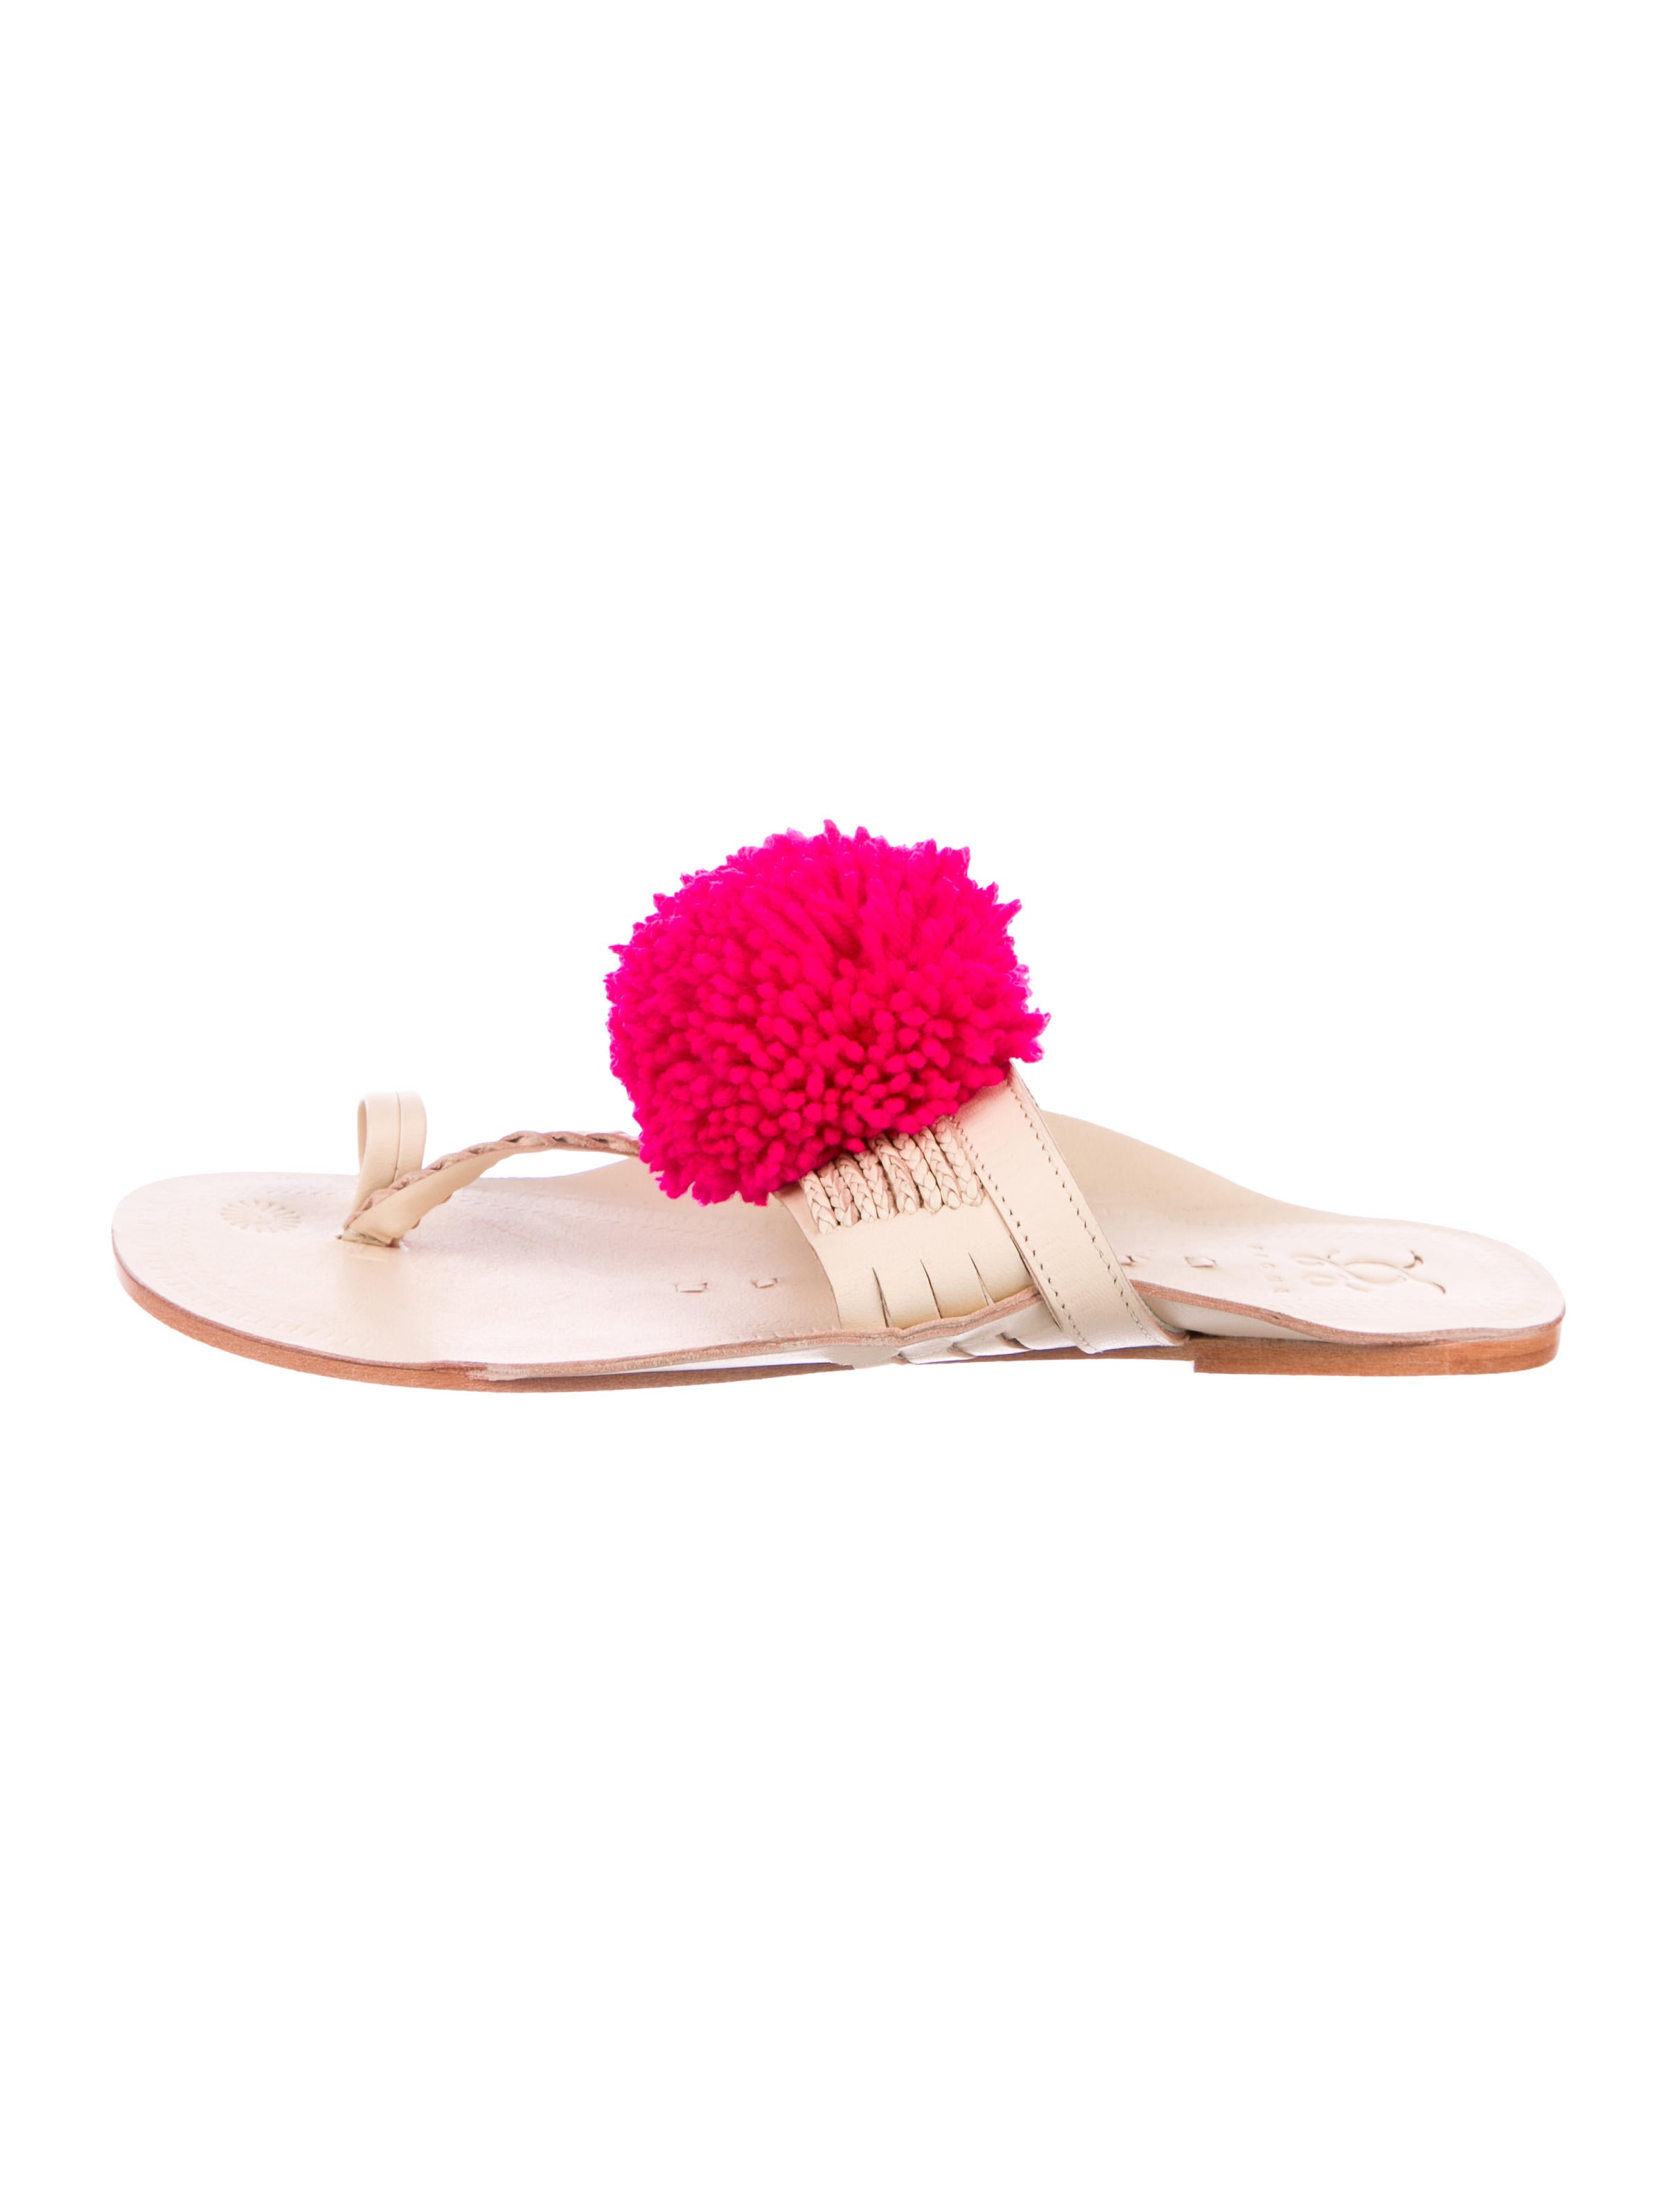 Figue Pom-Pom Leather Sandals w/ Tags deals cheap online under $60 for sale xaM8dWiTaj